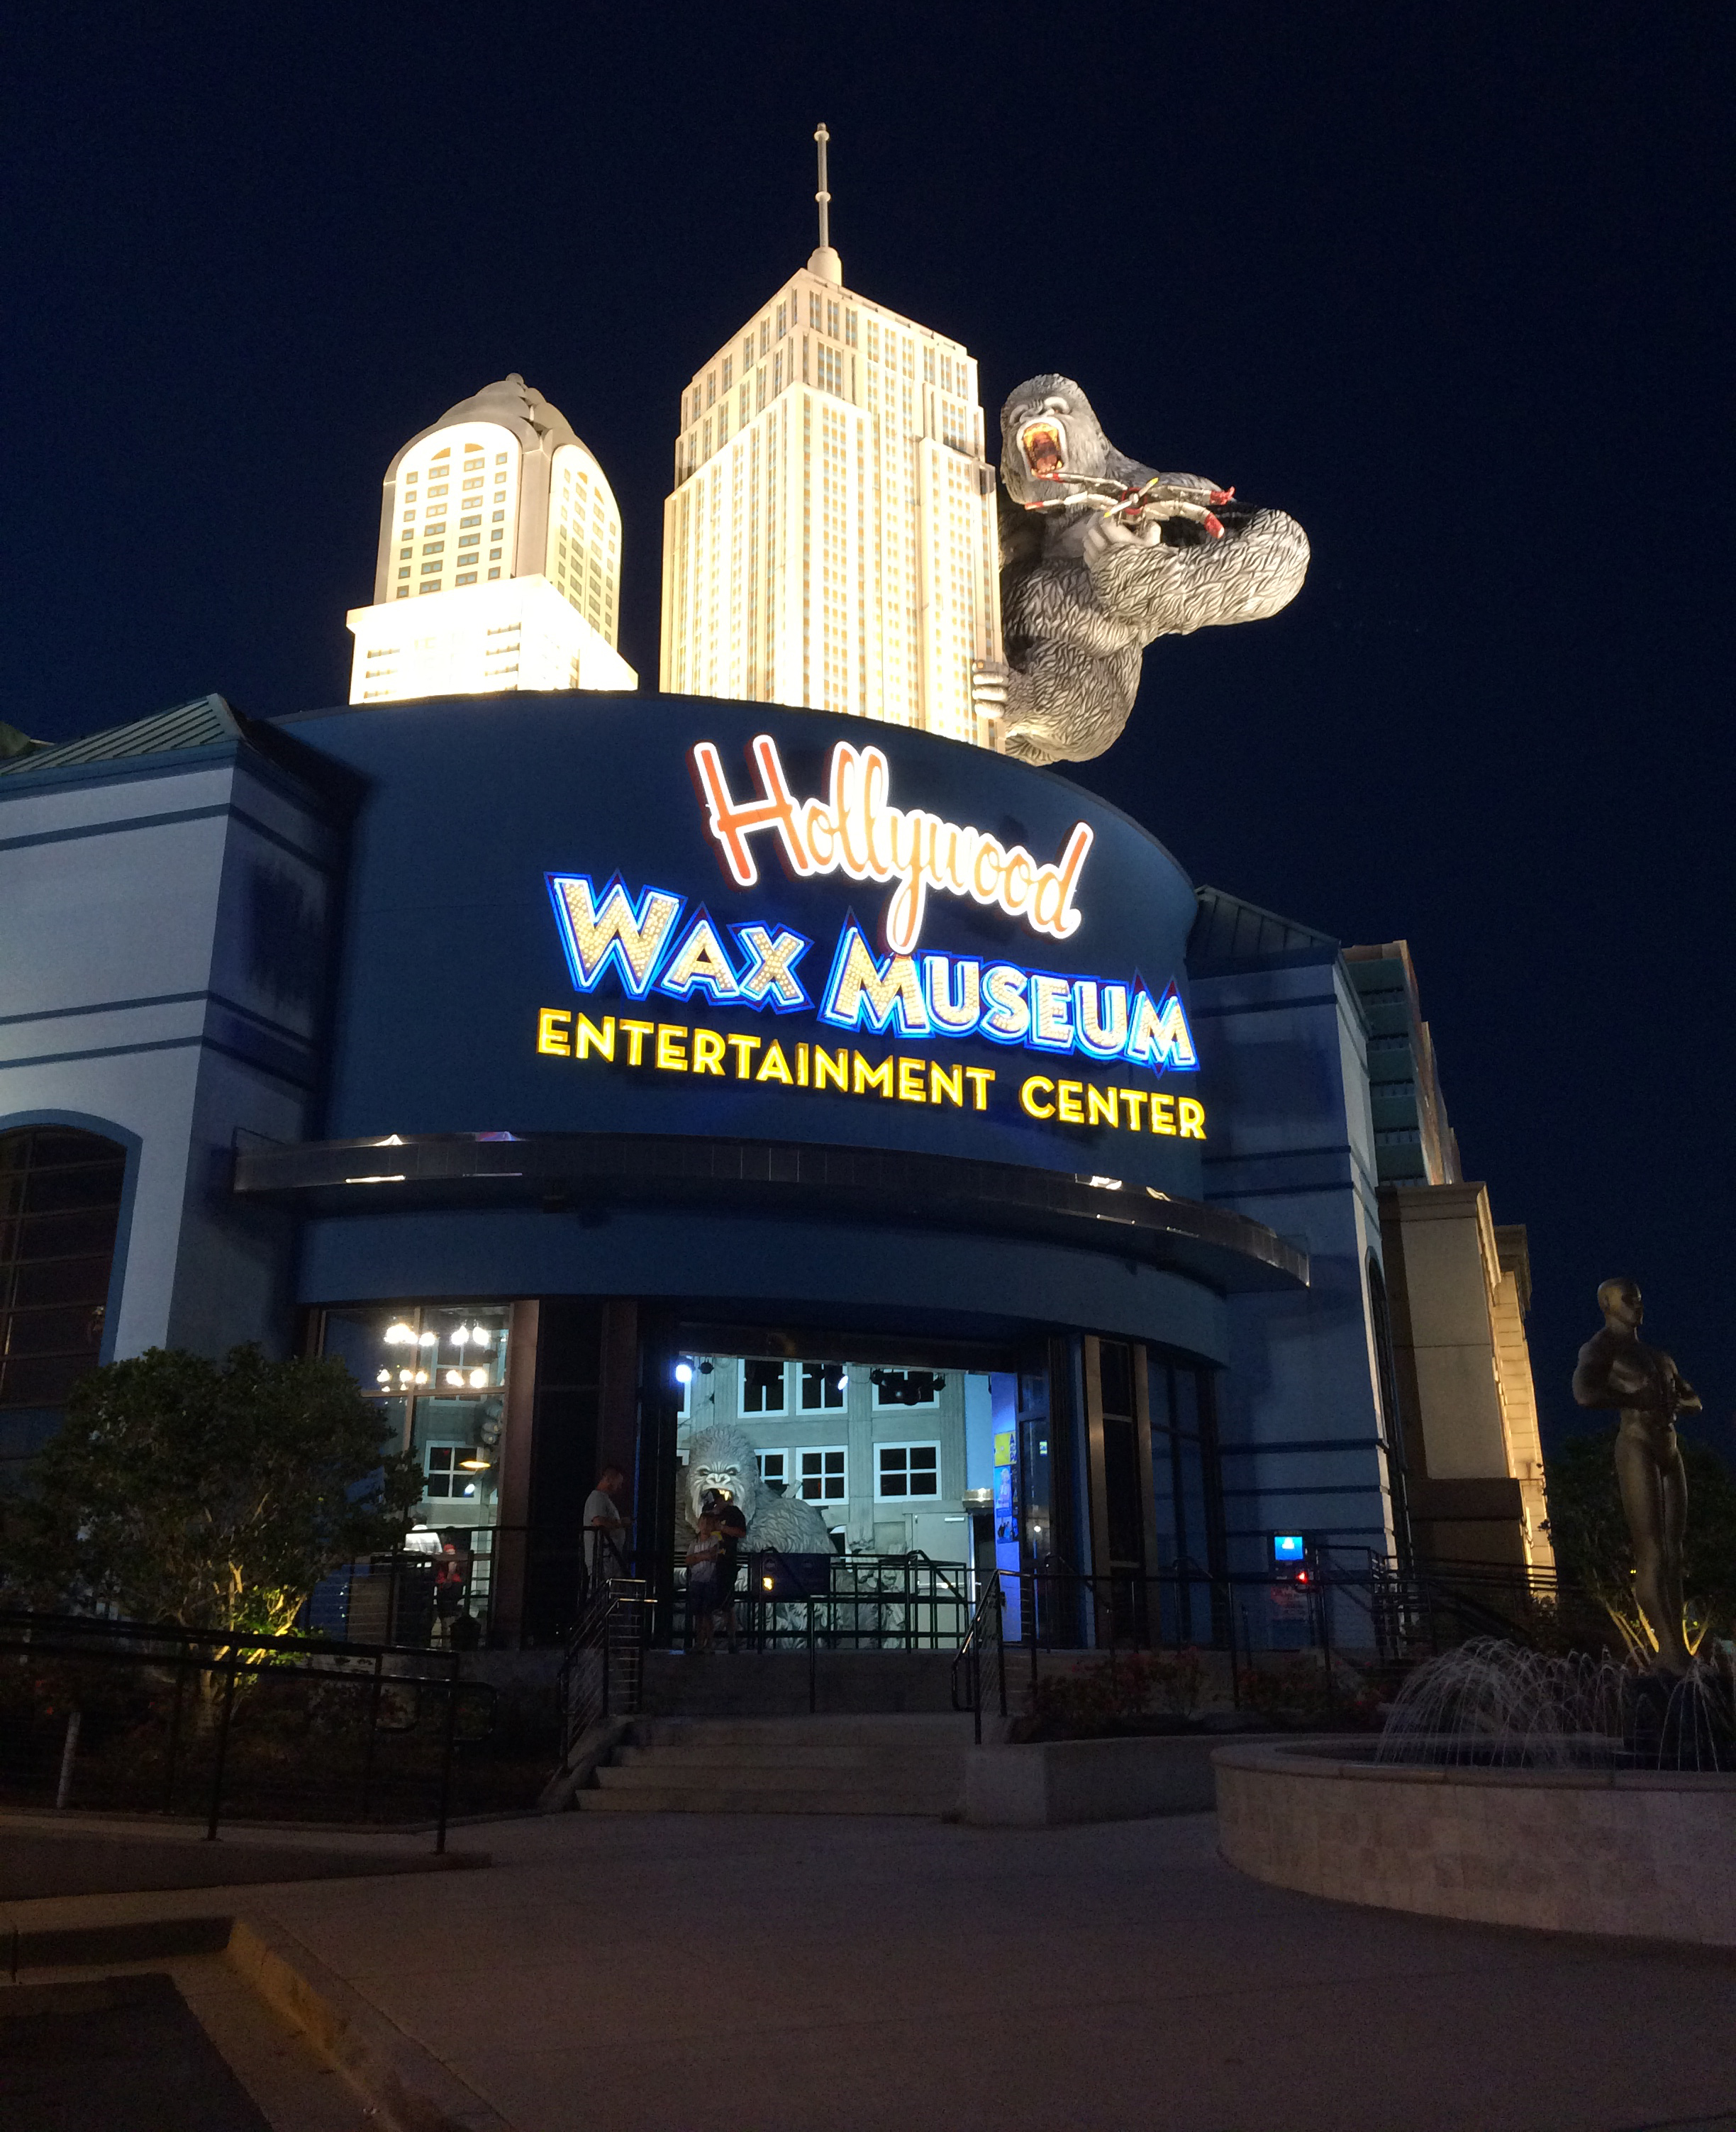 Before we walked inside on Friday night, I took this photo of the Hollywood Wax Museum.